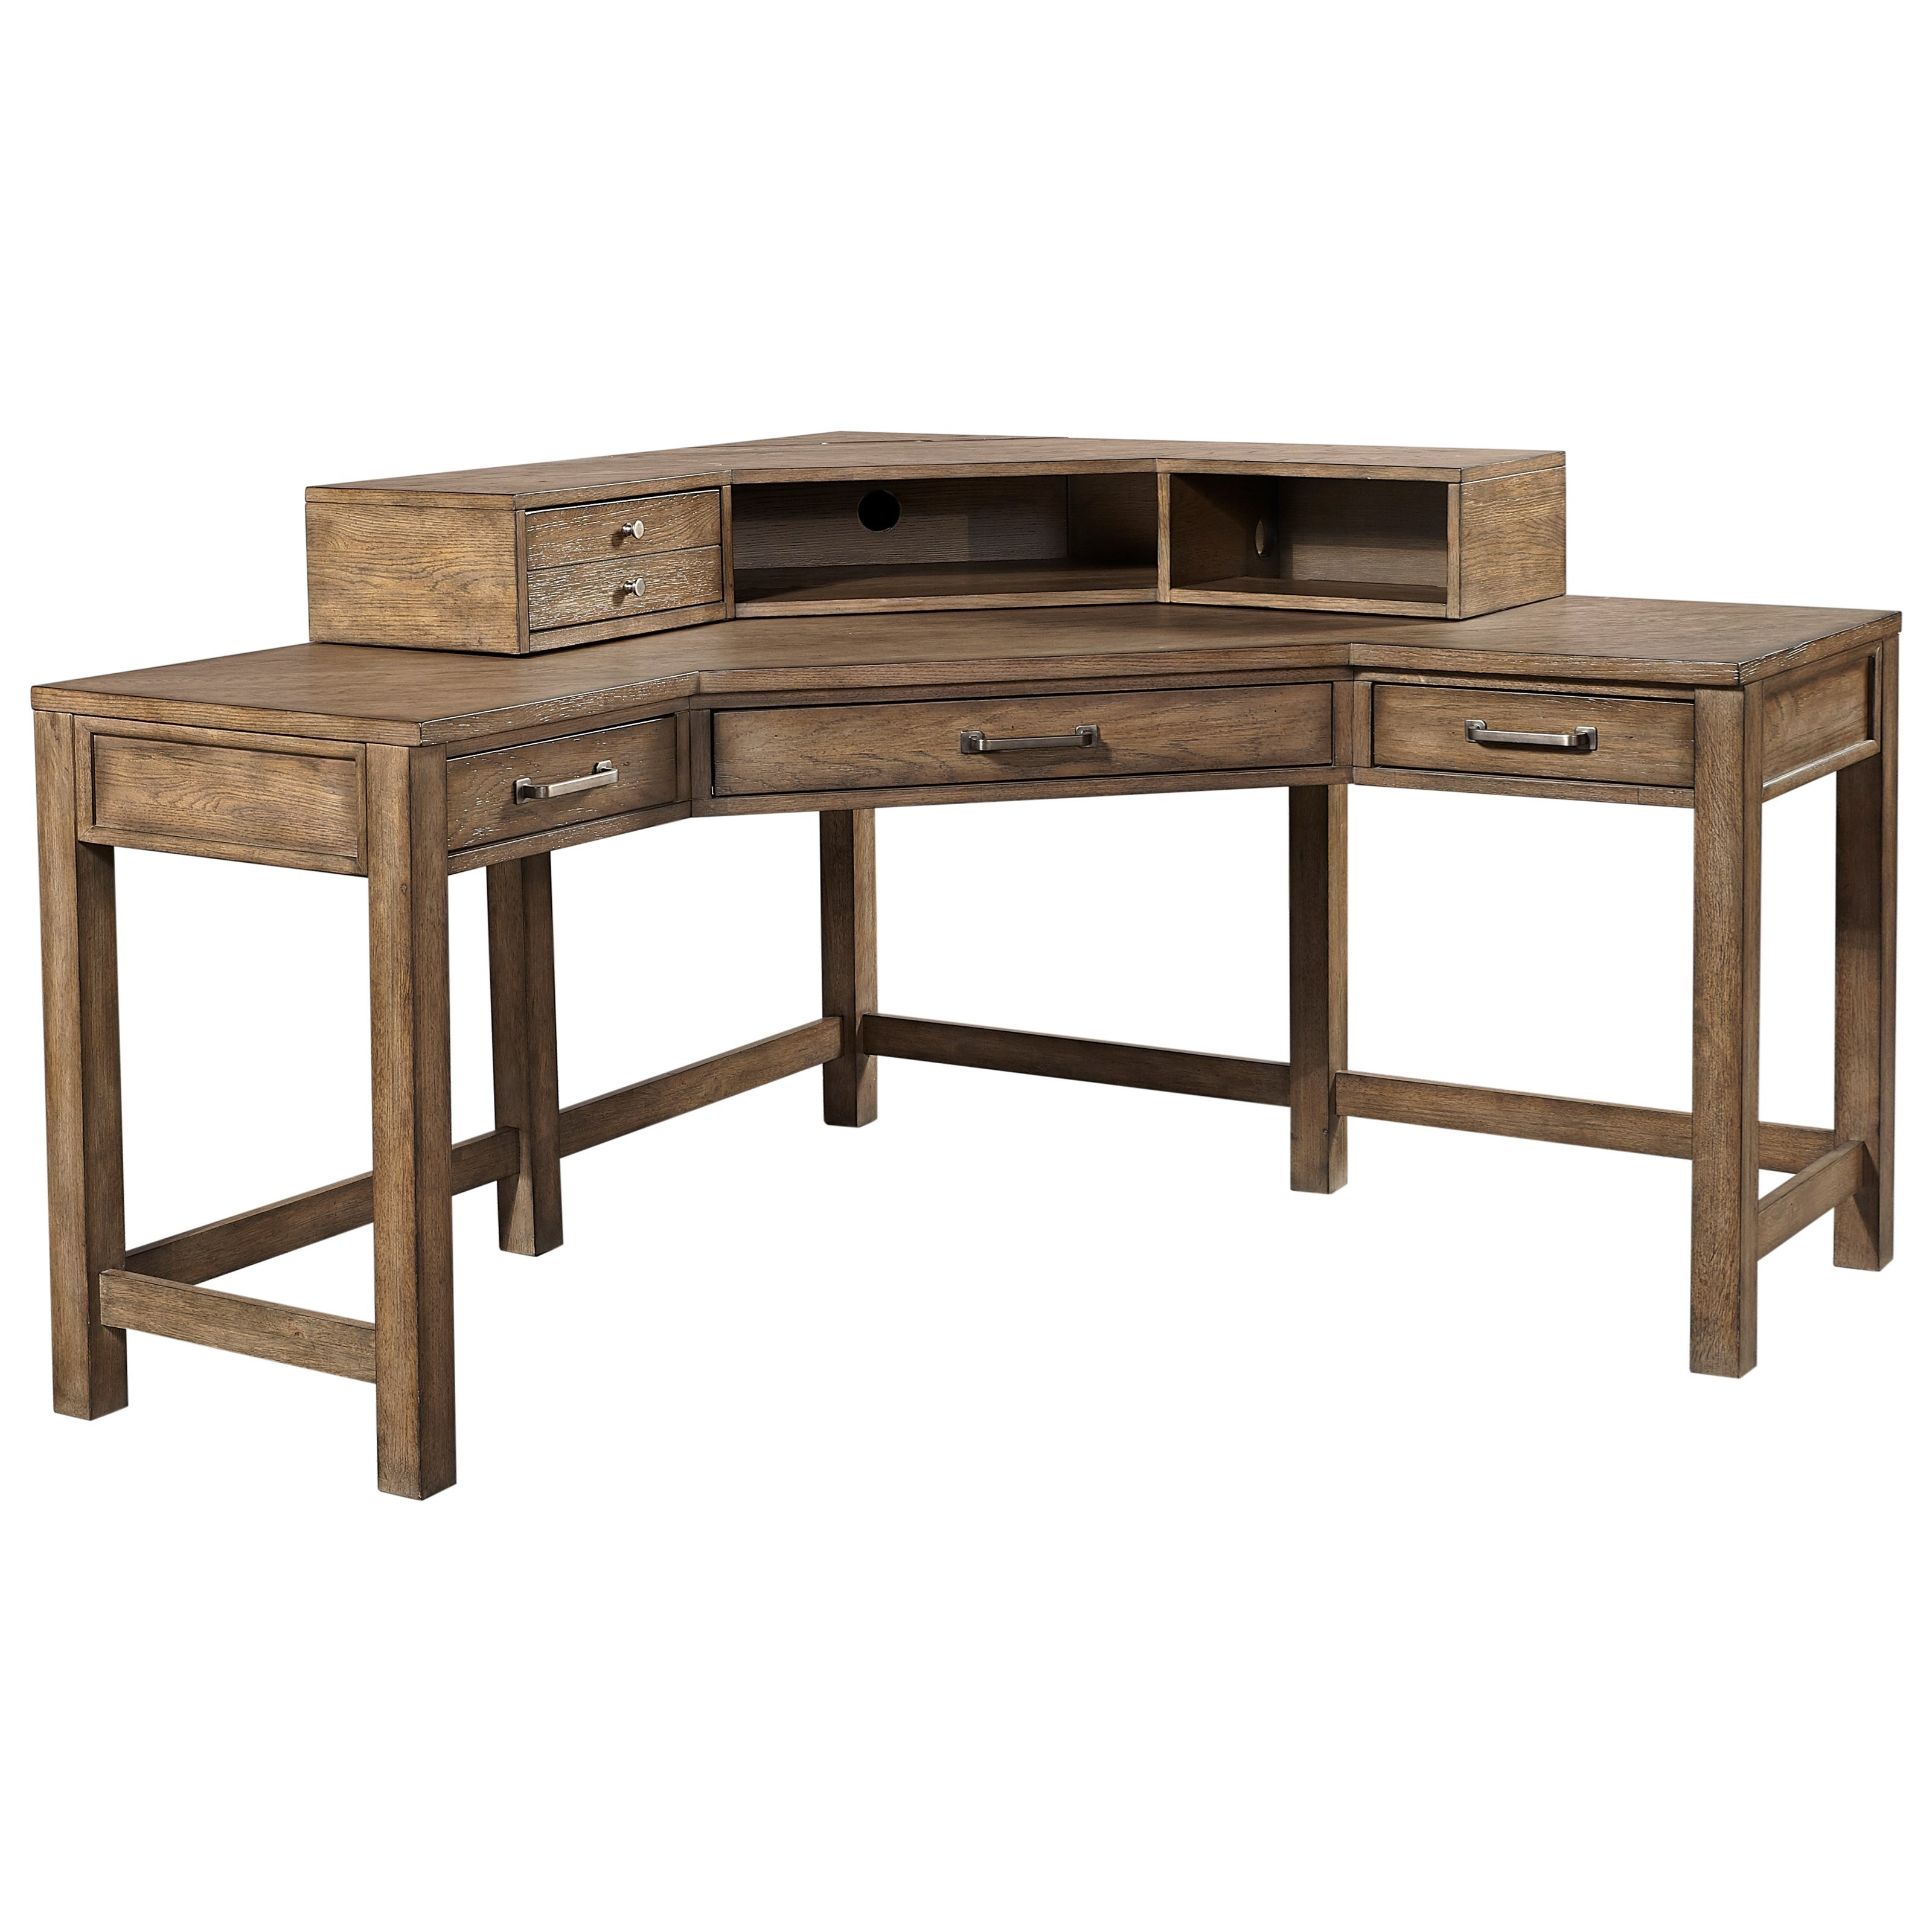 Terrace Point Corner Desk and Hutch by Aspenhome at Baer's Furniture